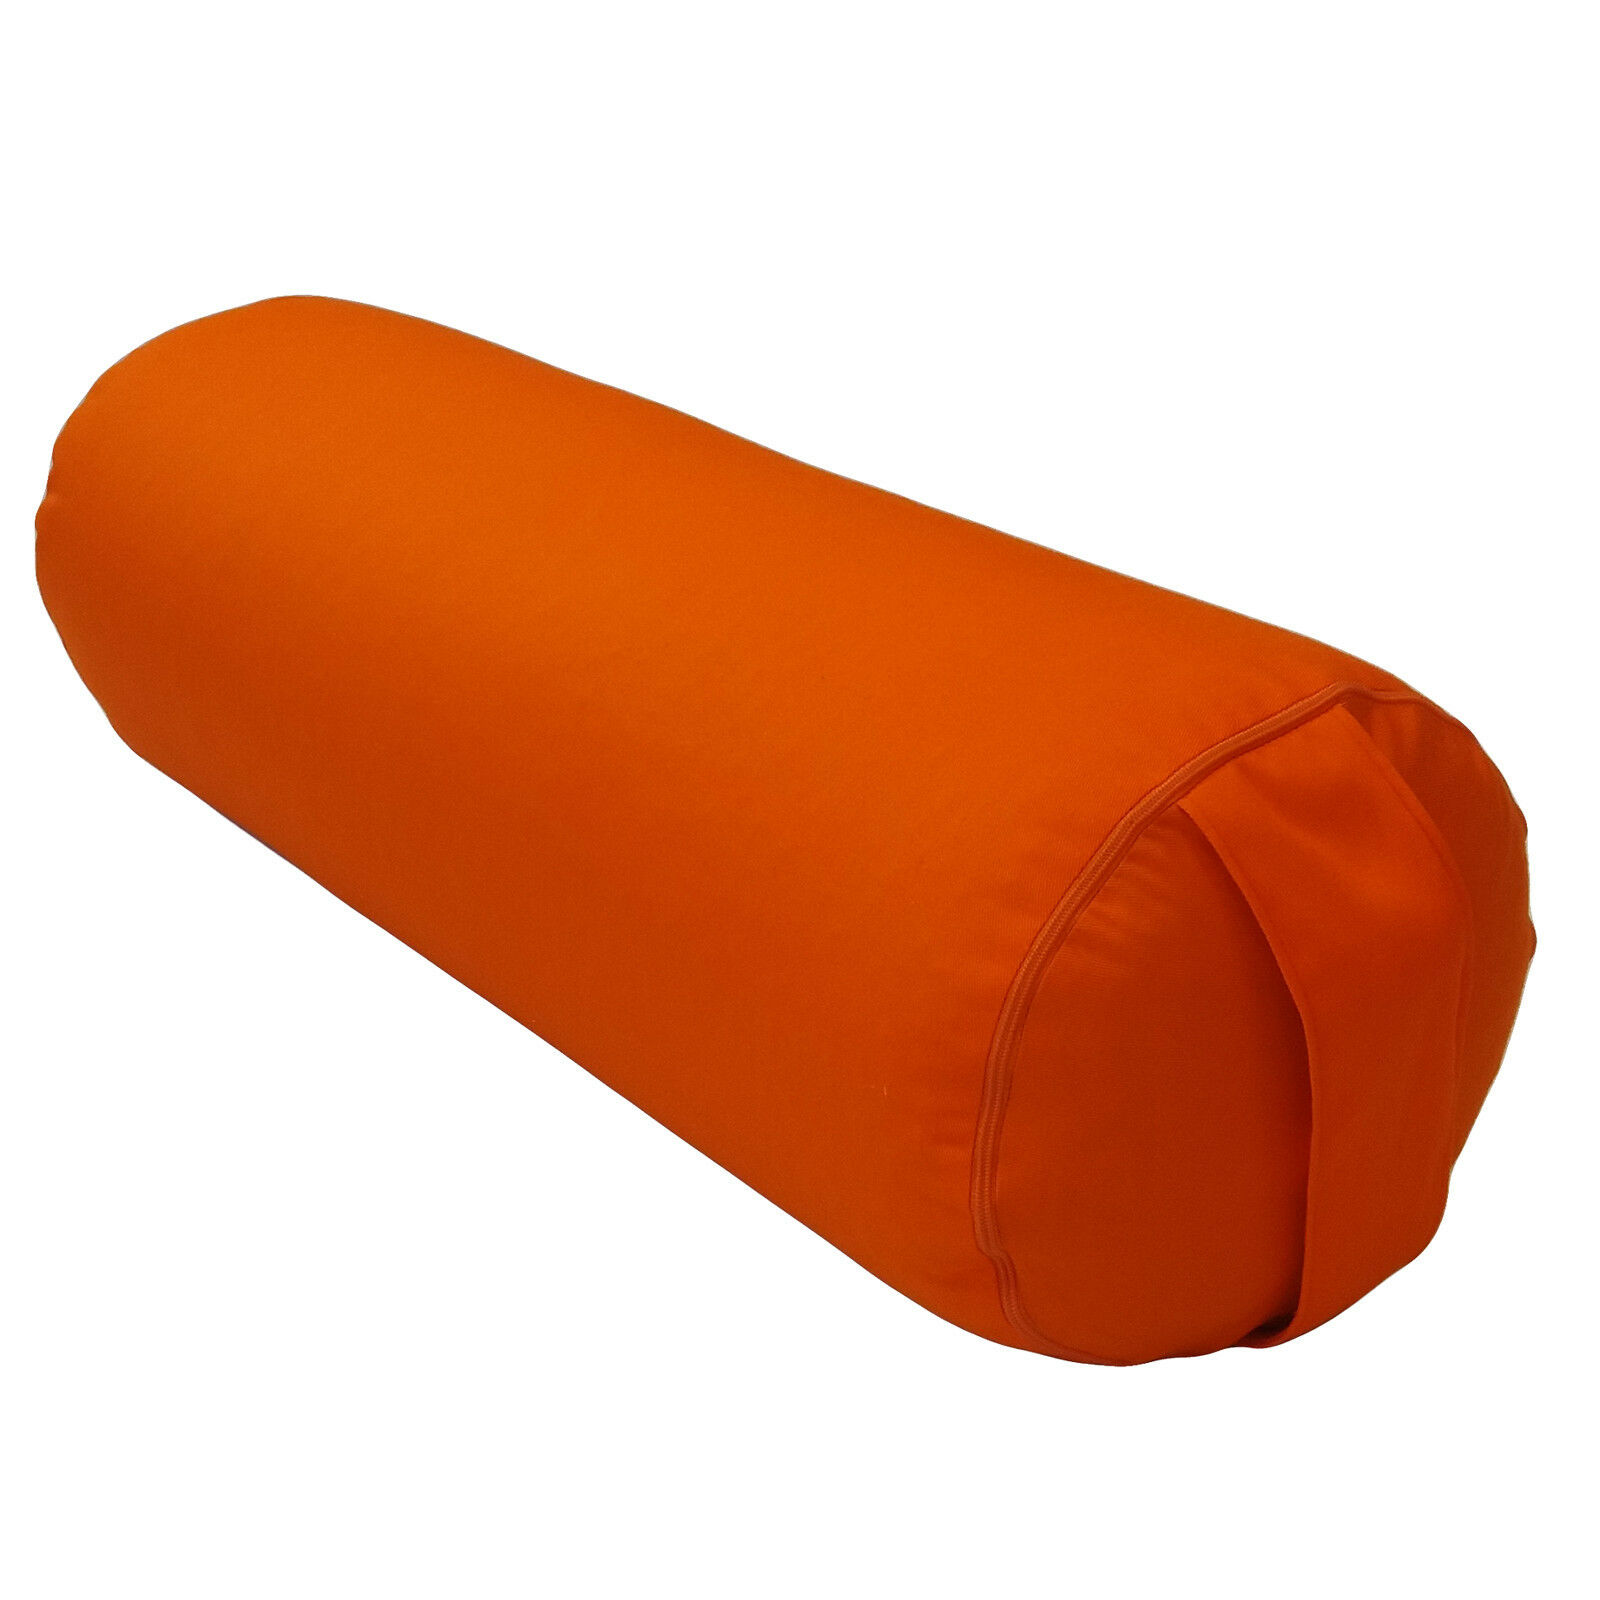 Yogarolle Pilates and Yoga Bolster Yoga Pillow Ø 22 cm x 65CM L